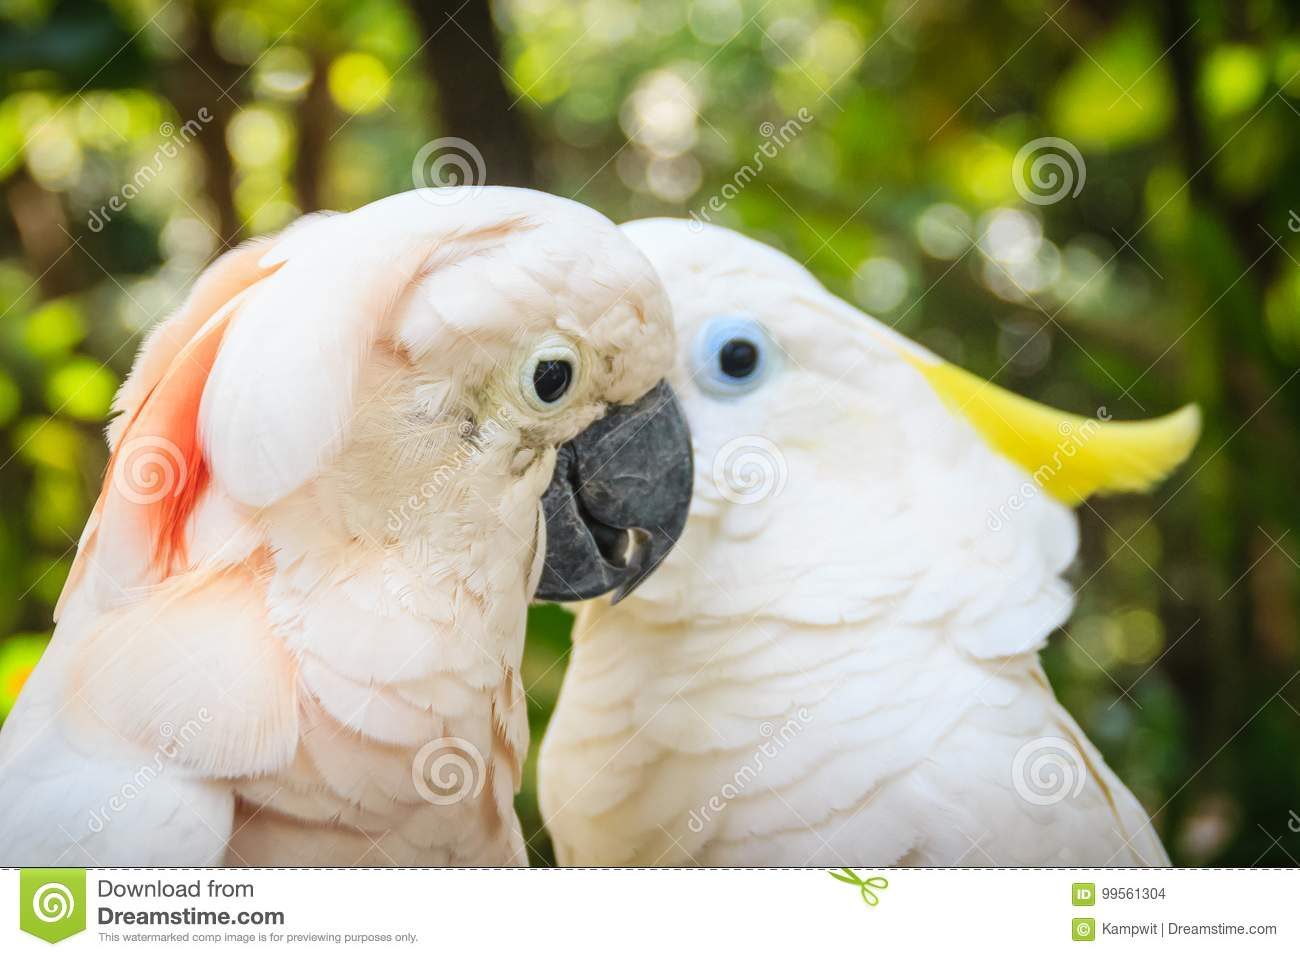 lovely couple of cockatoos. cute couple white cockatoos kissing